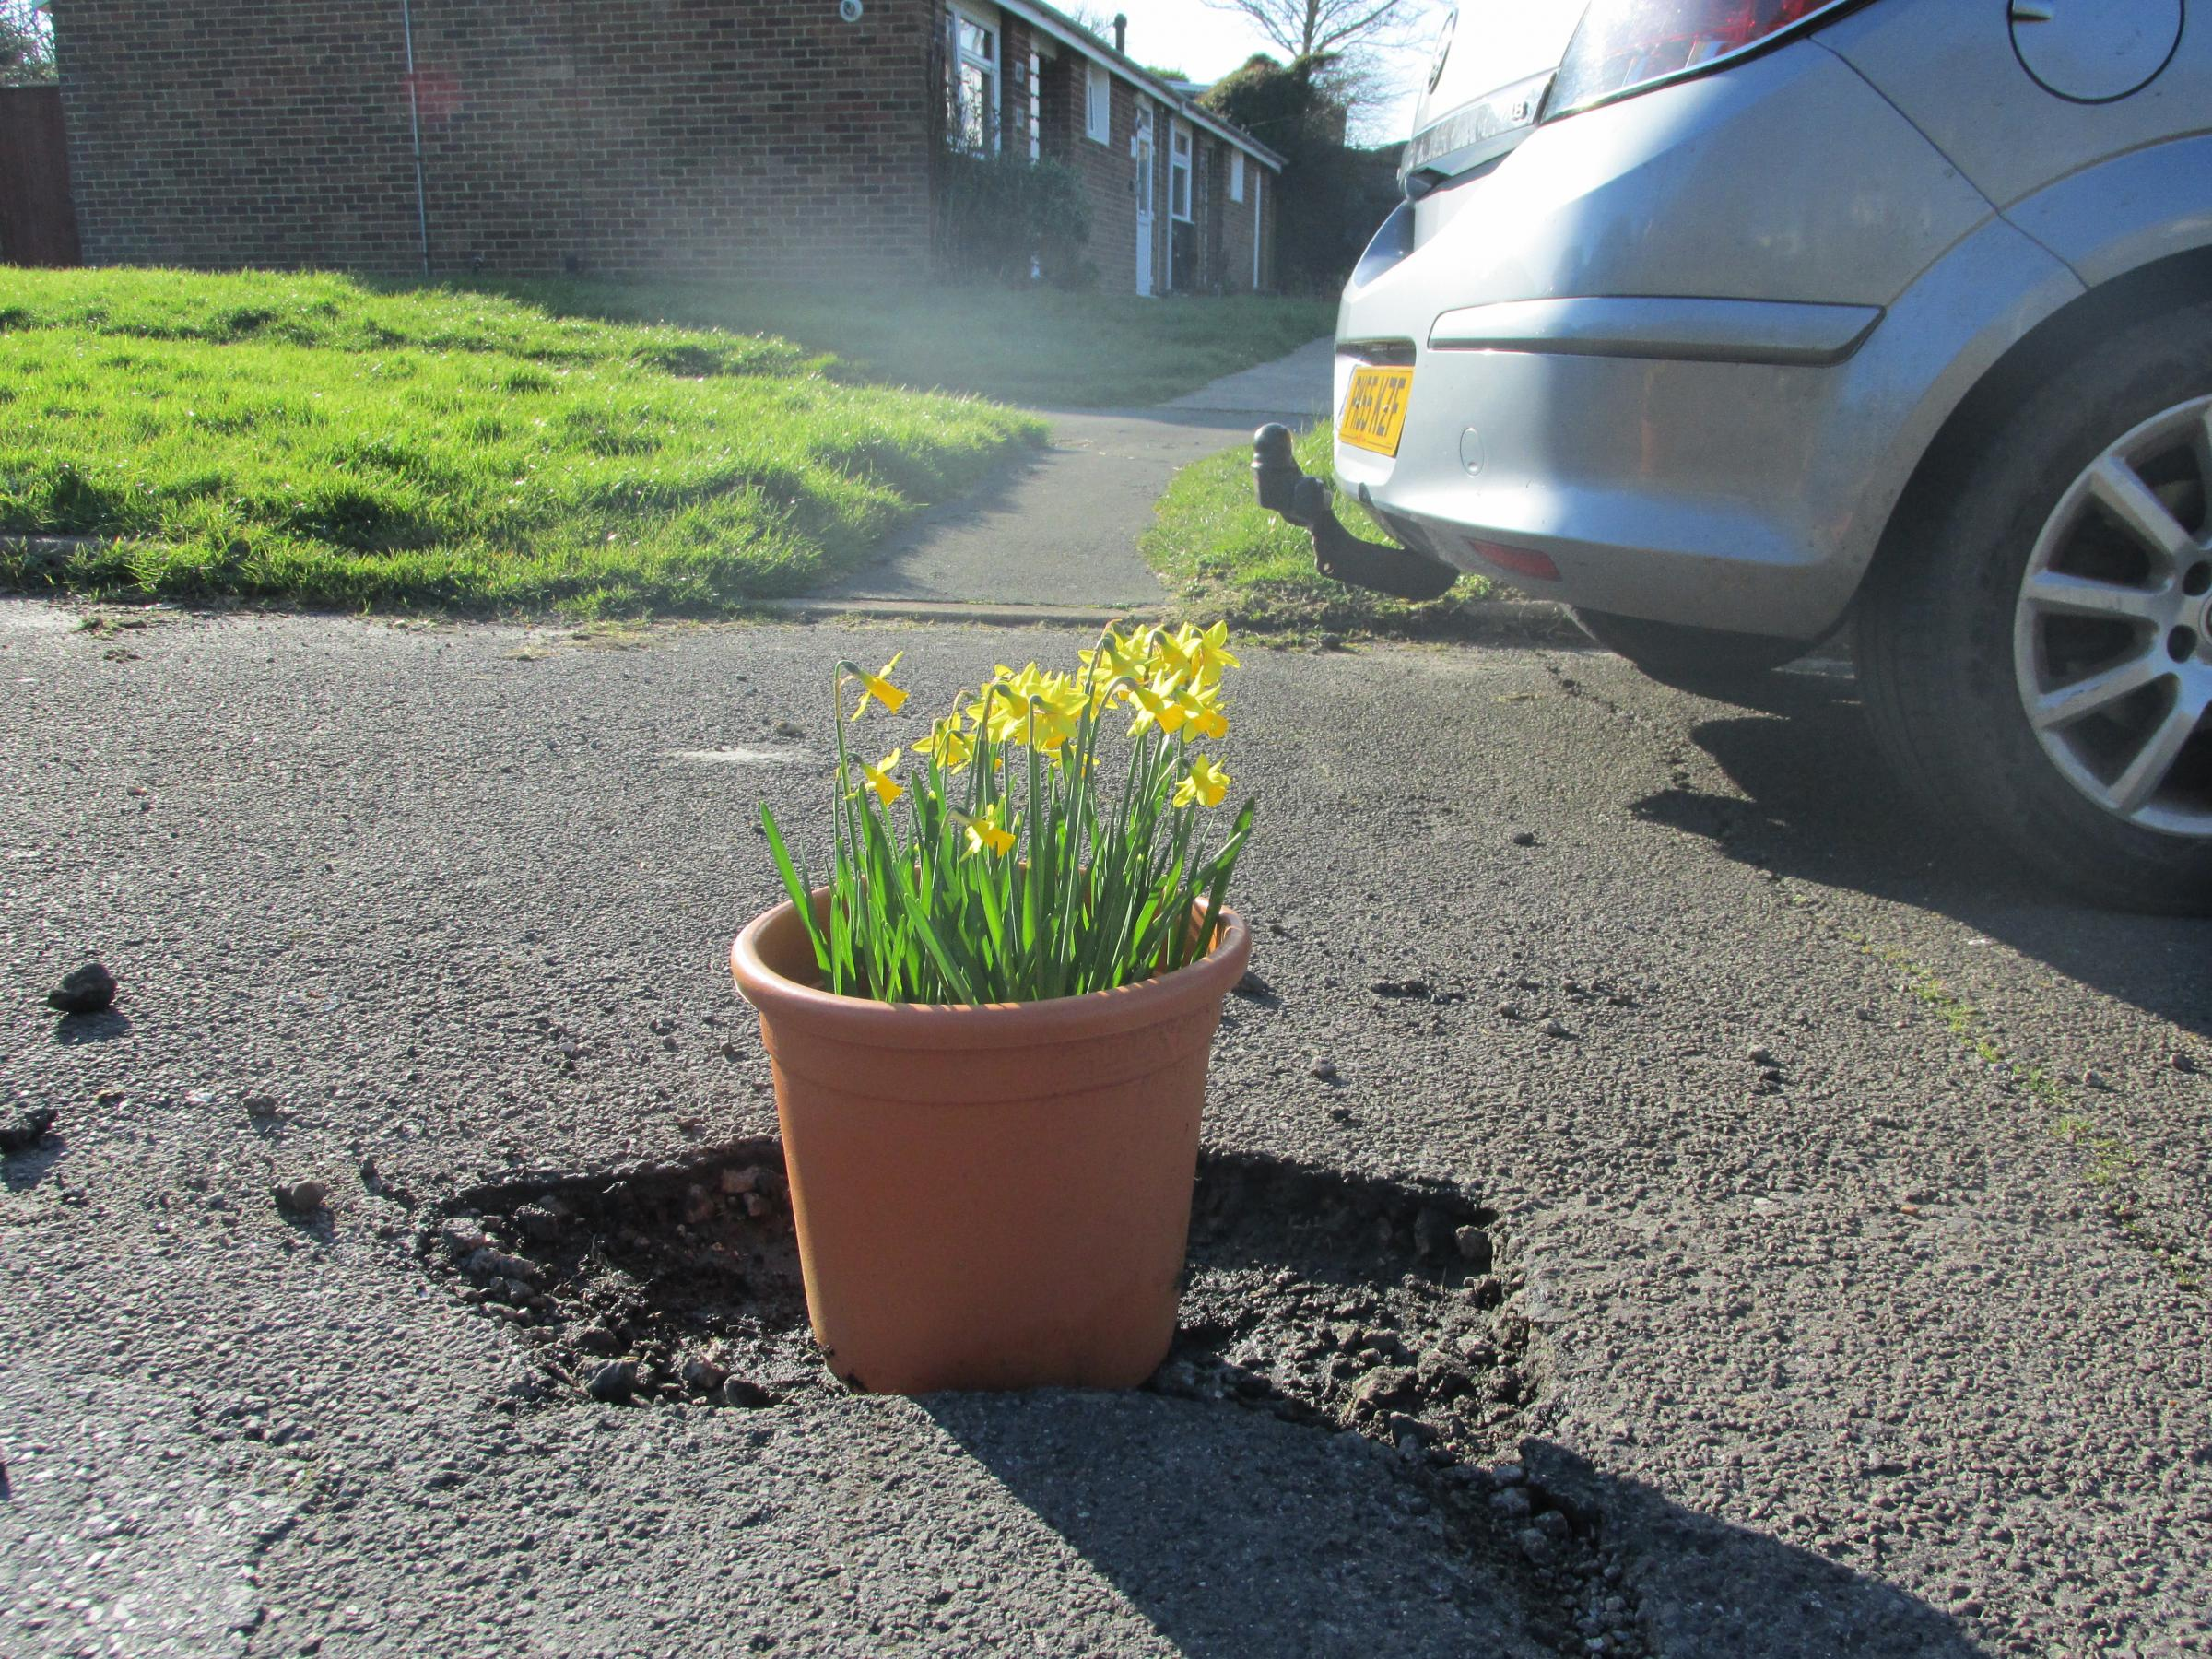 Campaigners plant flowers in Peacehaven potholes to highlight state of the roads